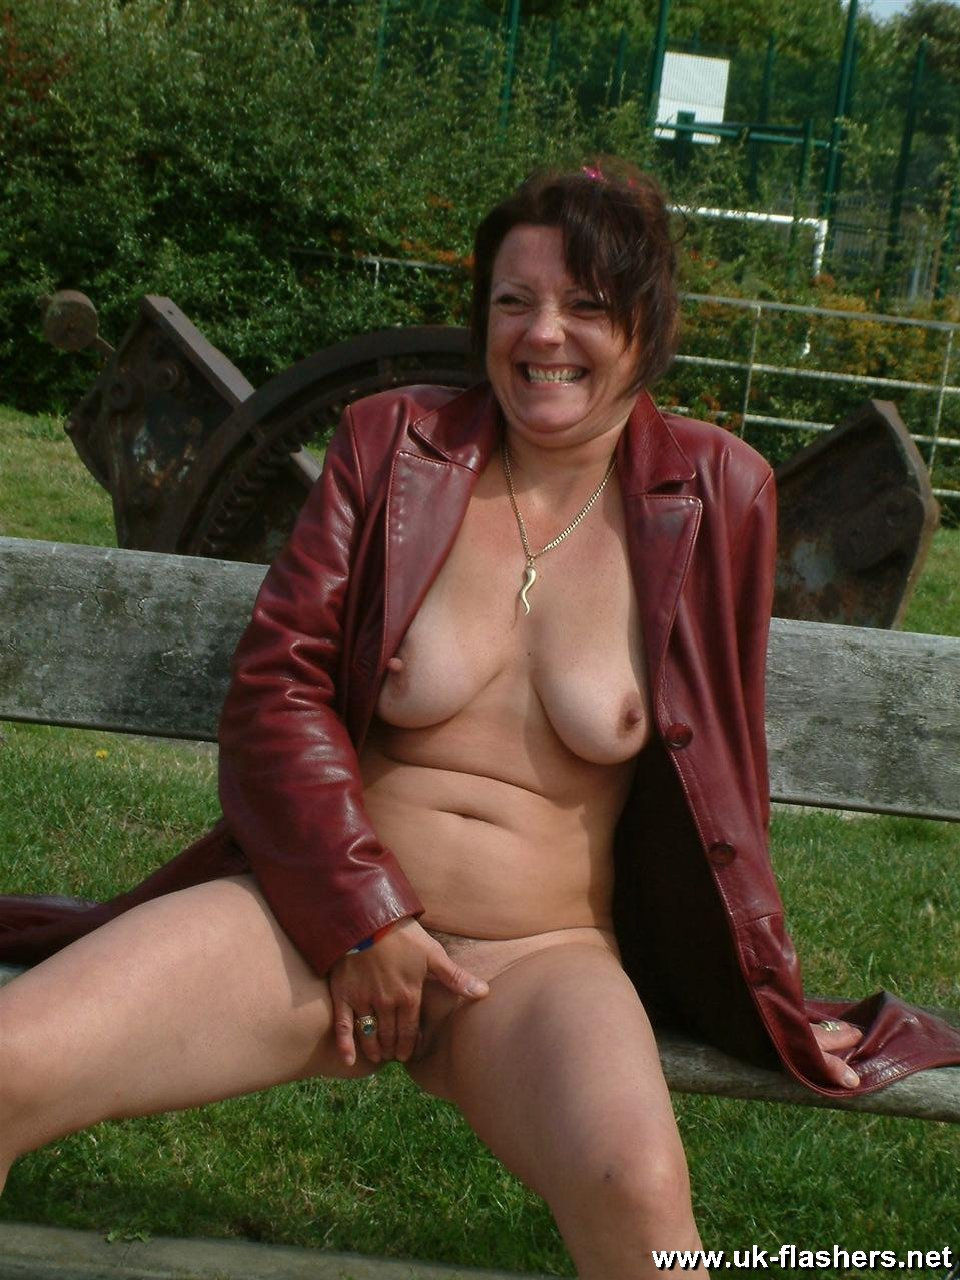 Share your amateur mature nude garden